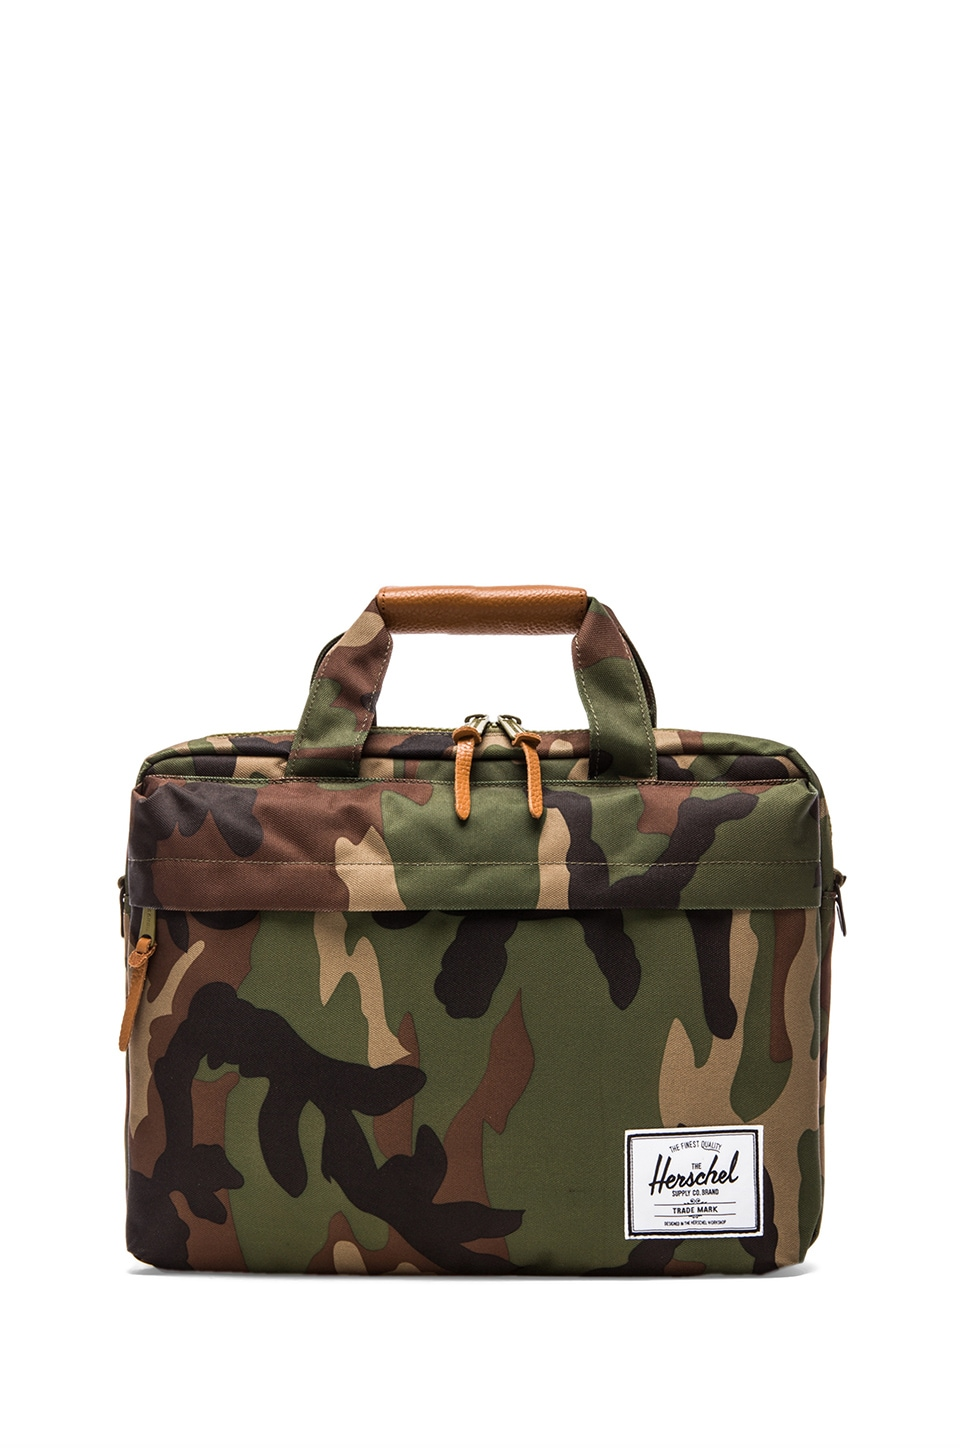 Herschel Supply Co. Clark Briefcase in Woodland Camo